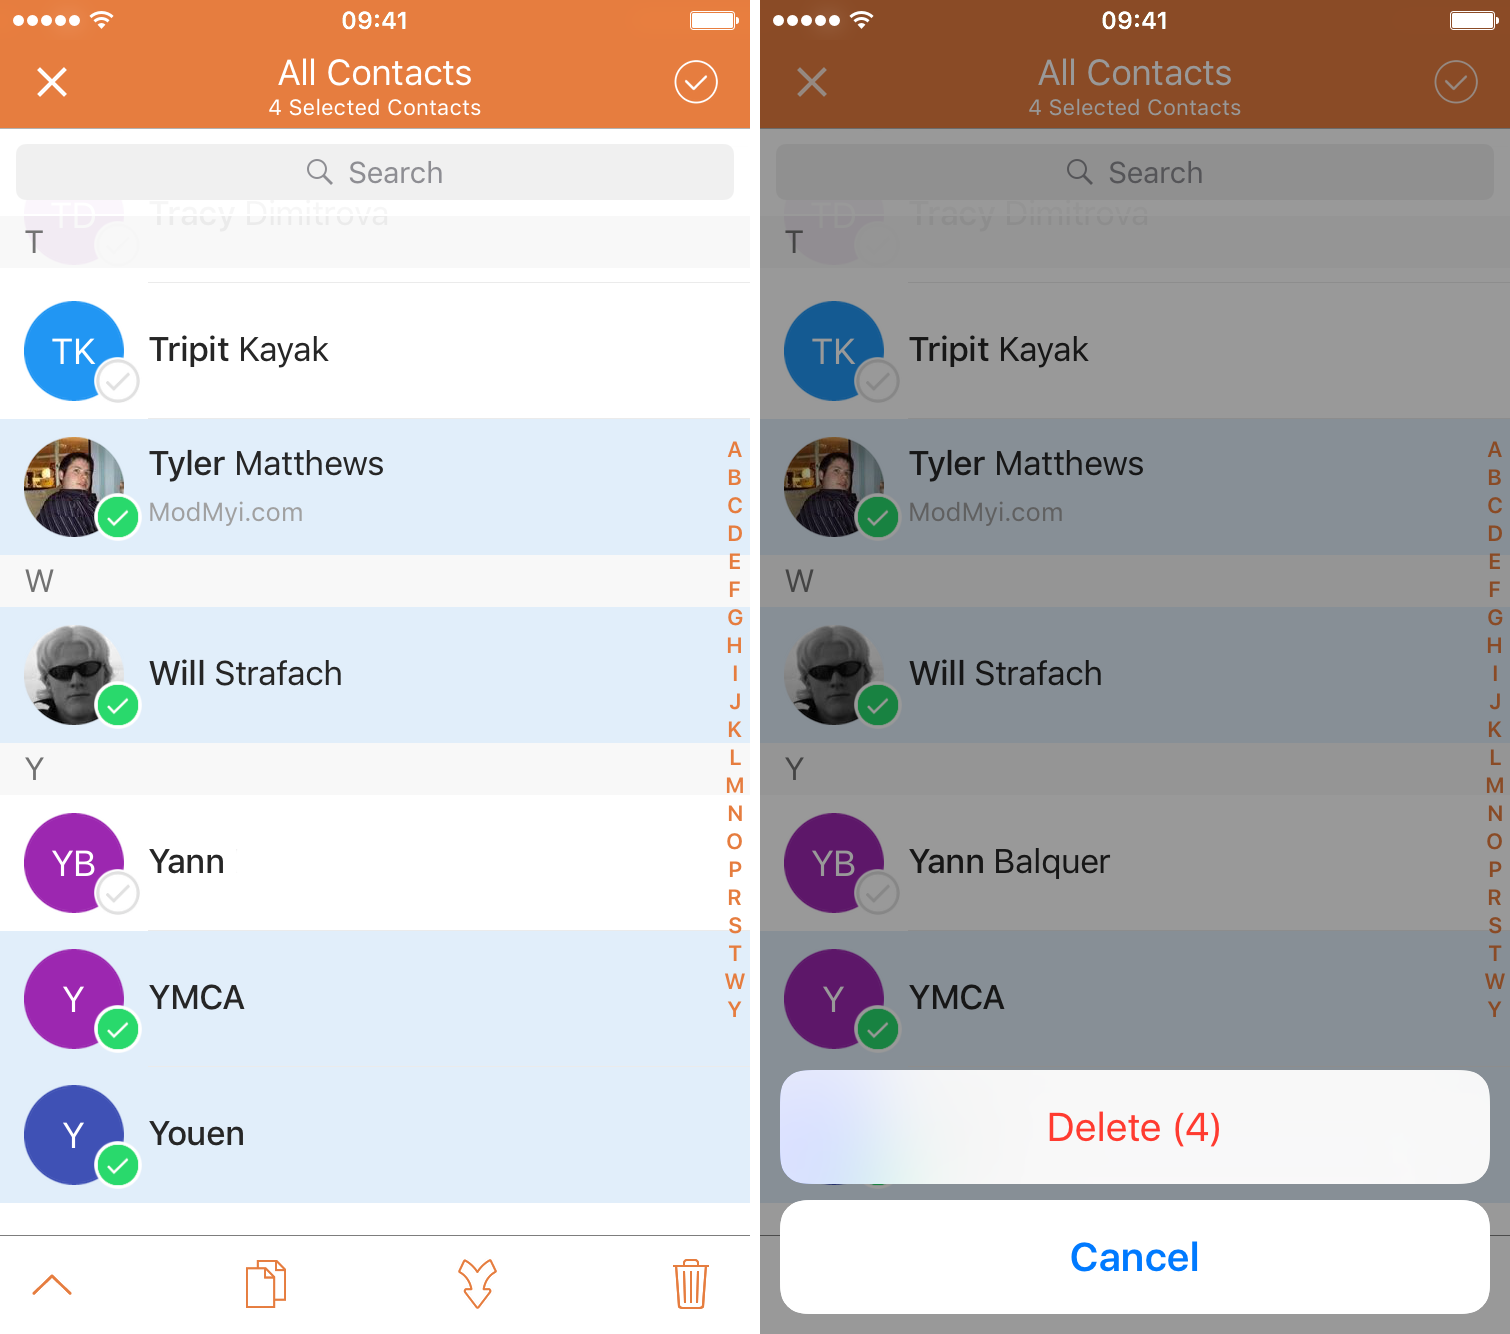 How to delete several contacts at the same time on iPhone